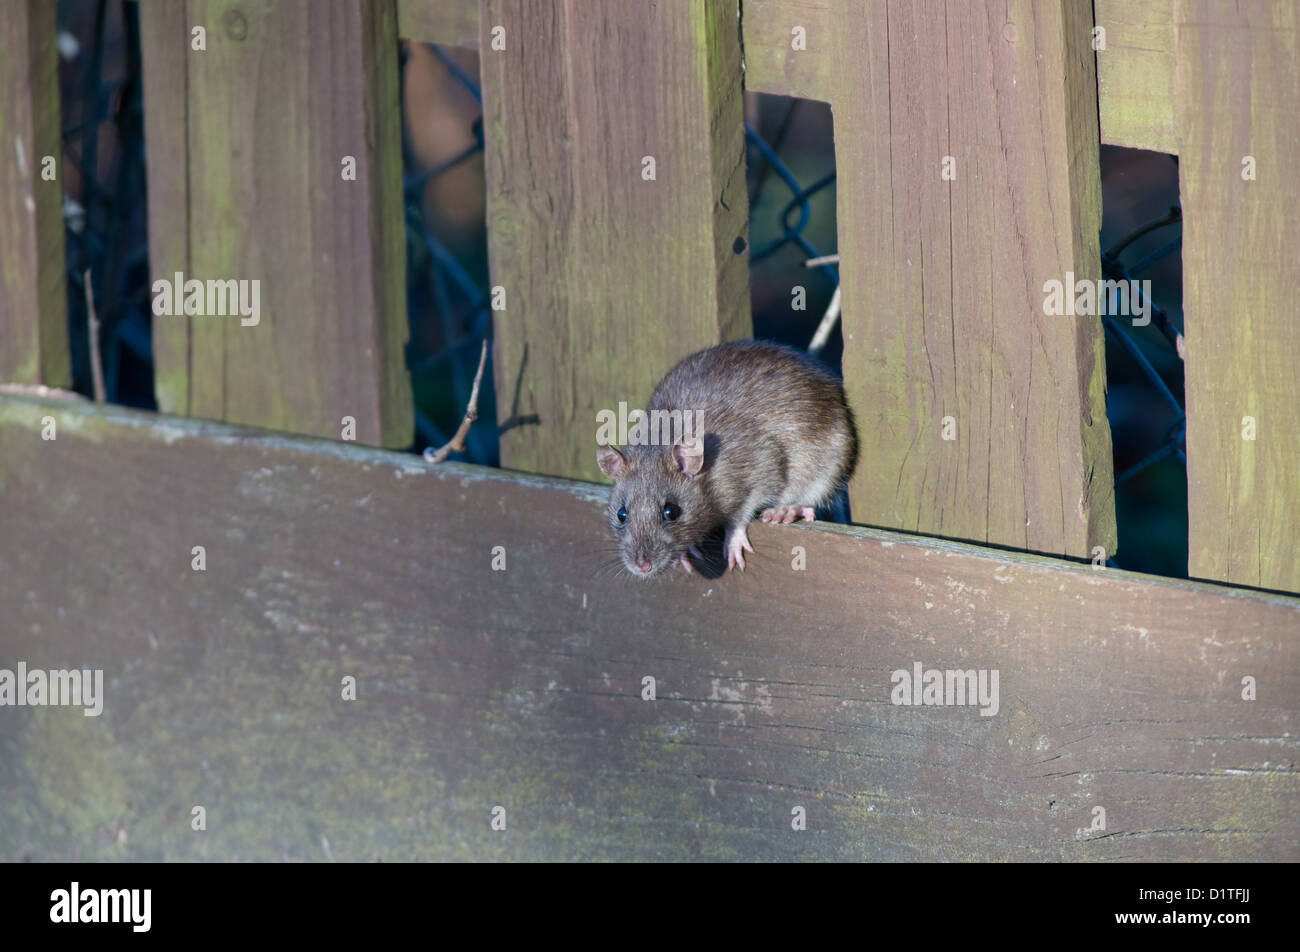 BROWN RAT, Rattus norvegicus. UK - Stock Image